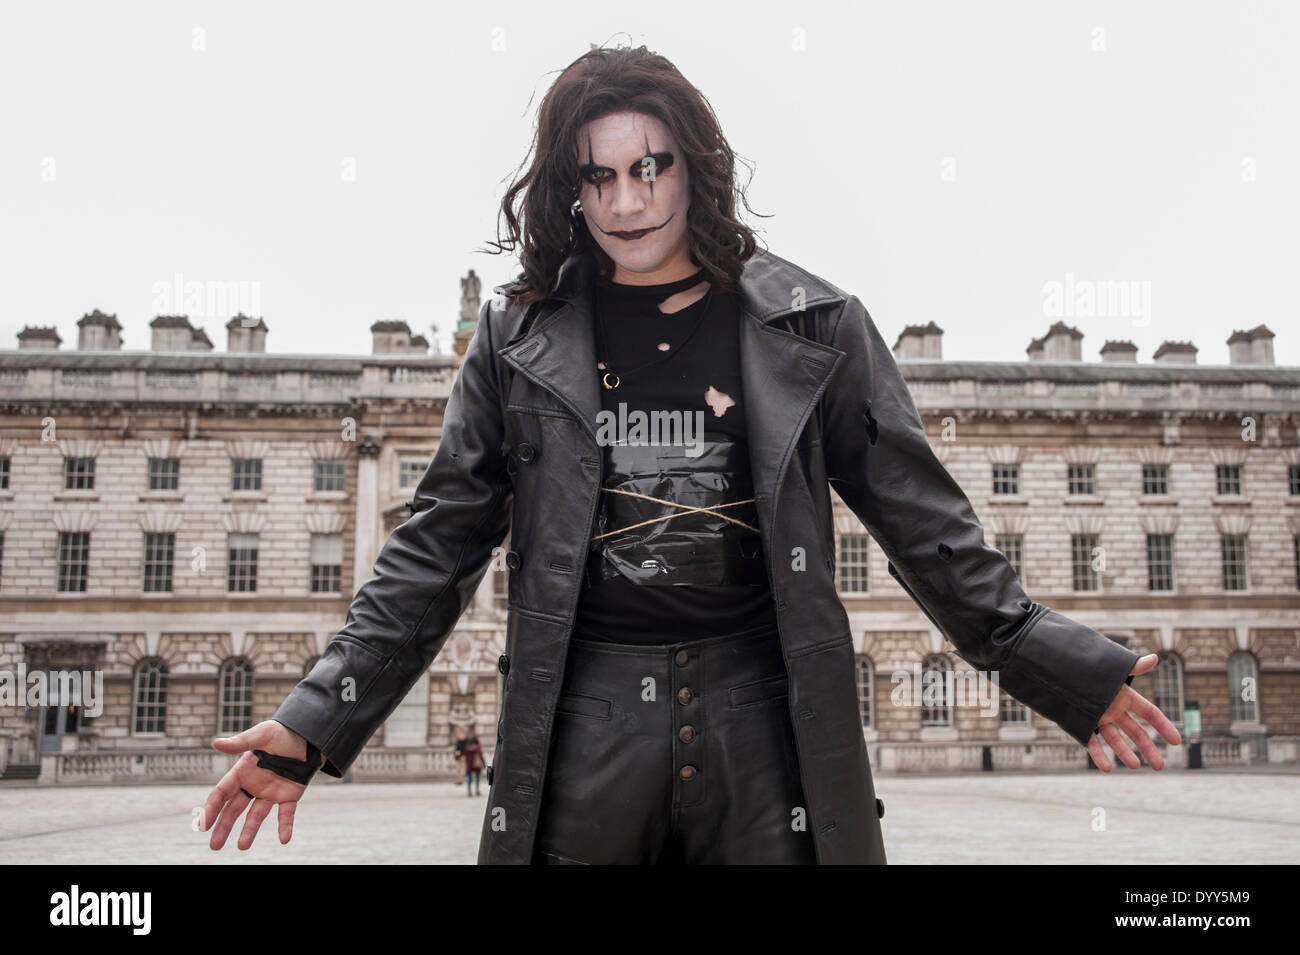 London, 27 April 2014 - people dressed as their favourite sci-fi characters take part in the Sci-Fi London 2014 costume parade starting at Somerset House and finishing at the BFI on the South Bank. A man dressed as the character, the Crow.      Credit:  Stephen Chung/Alamy Live News - Stock Image